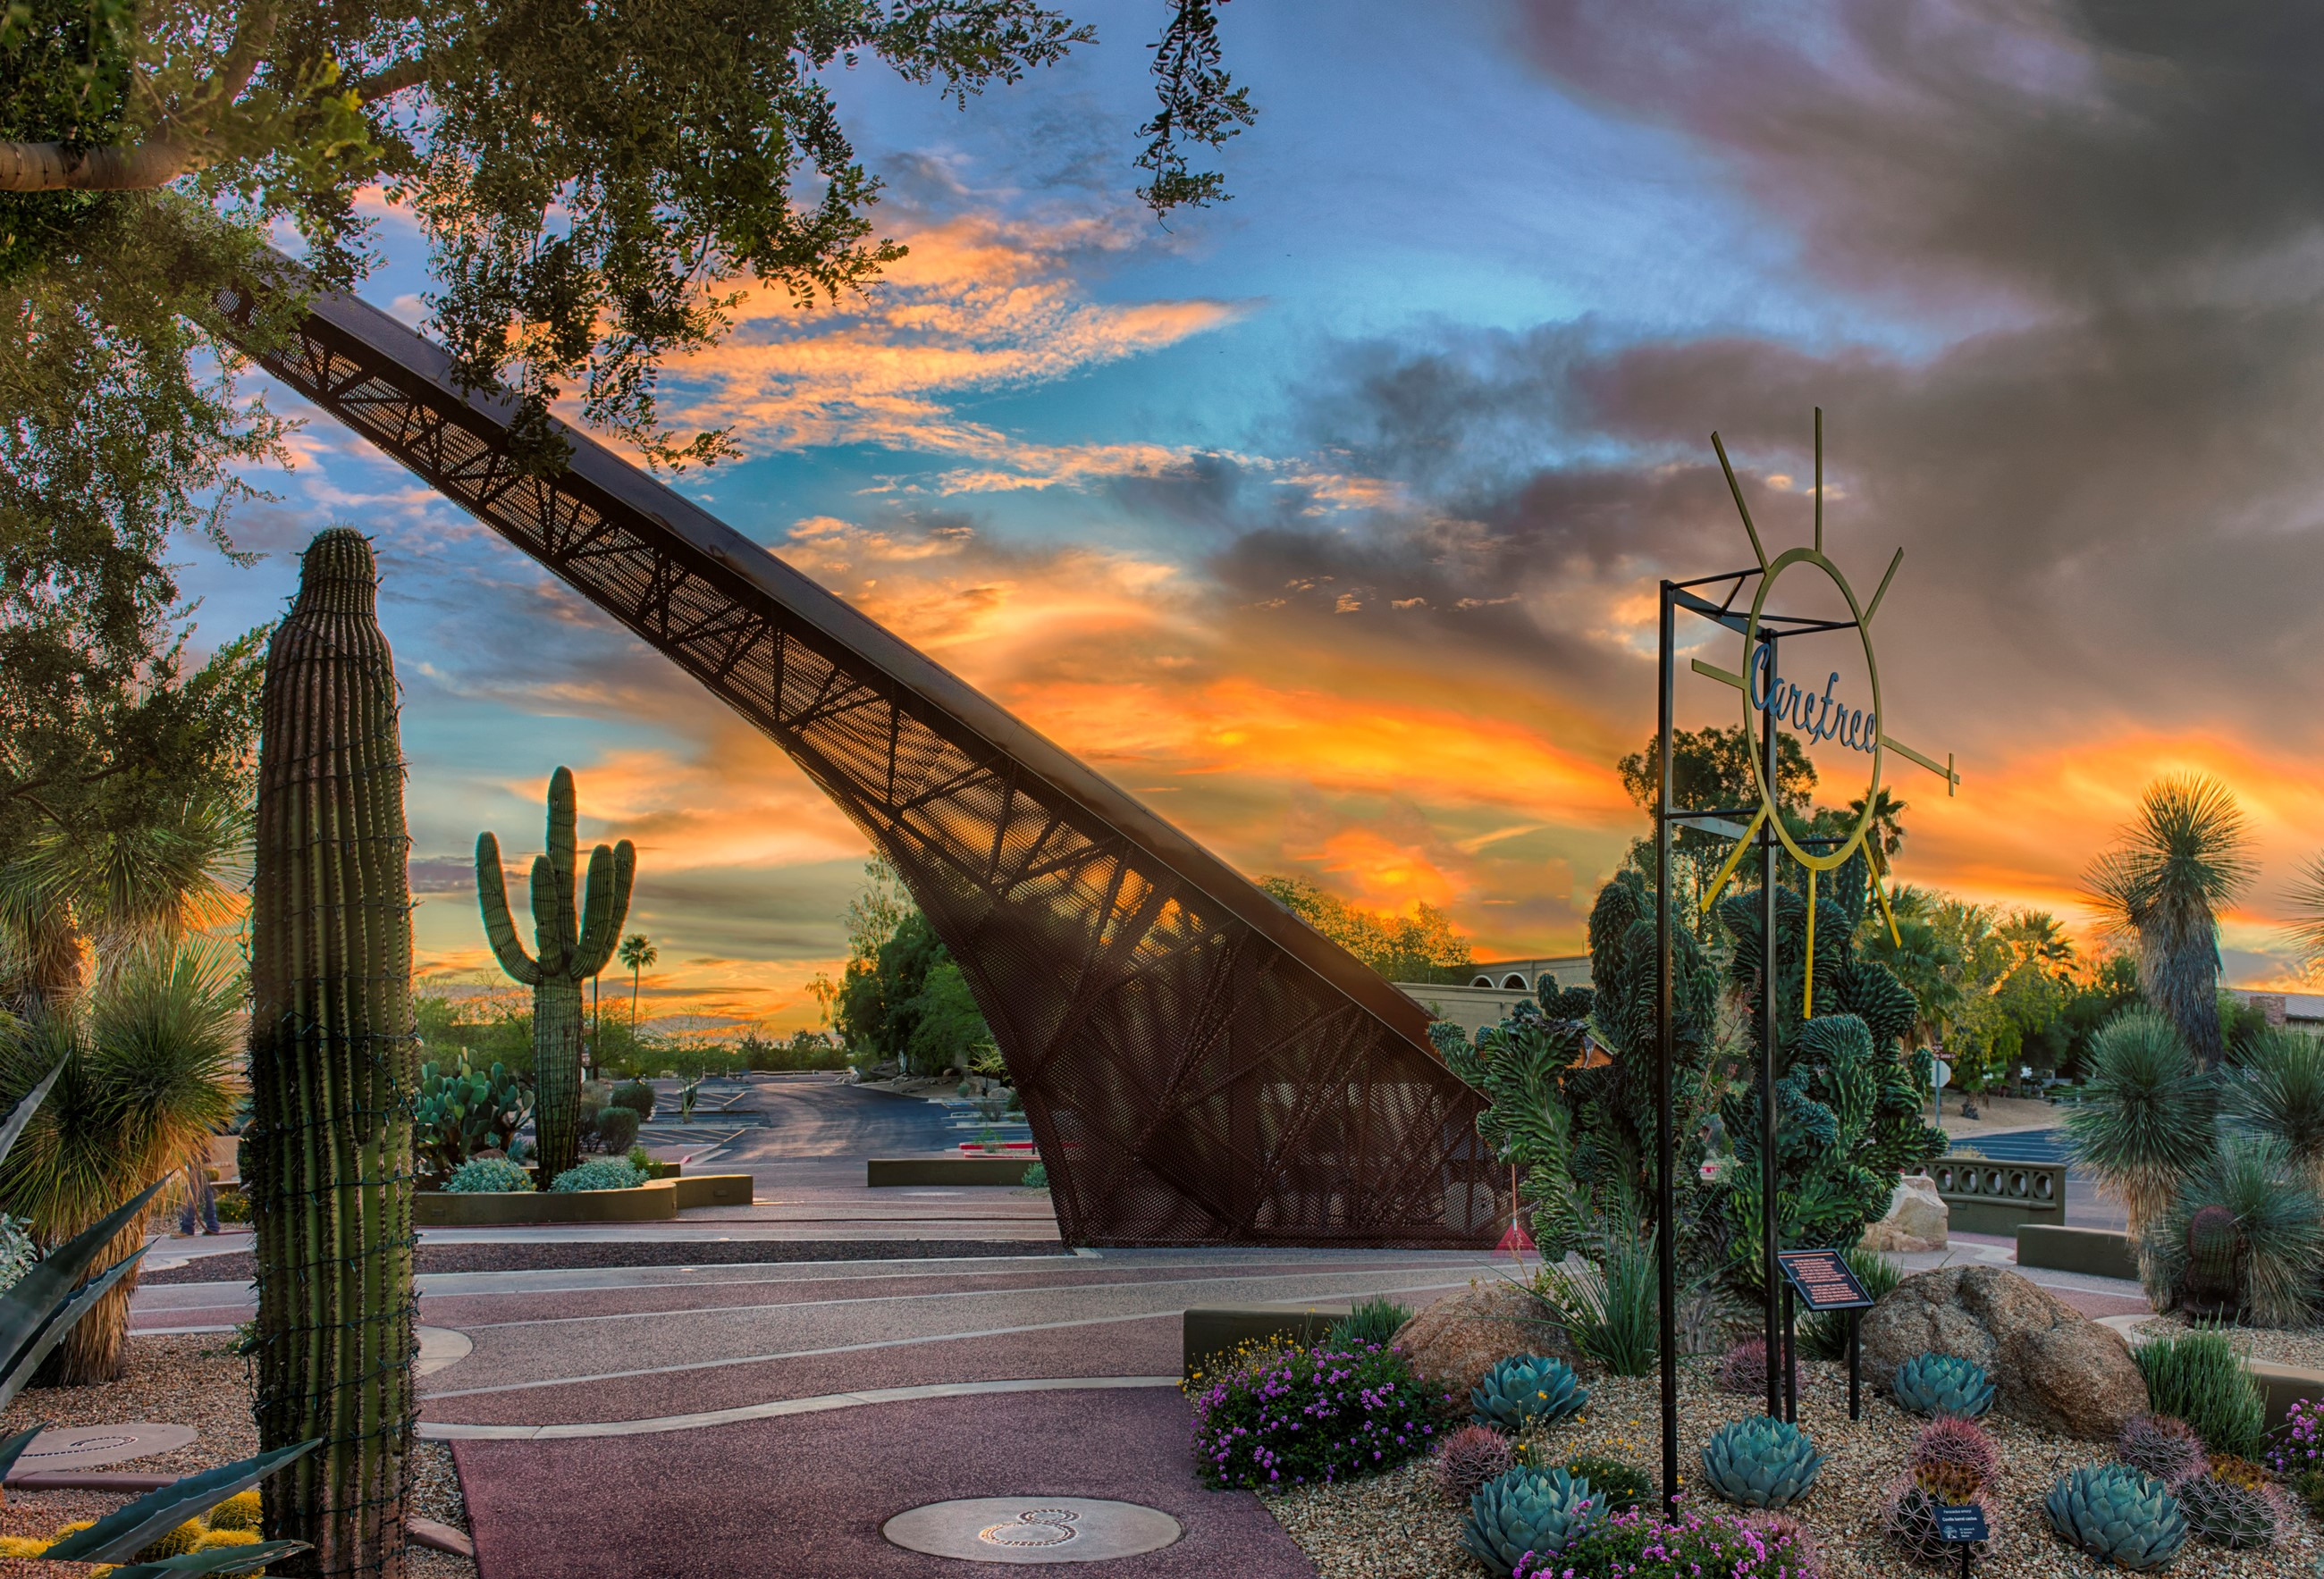 Things to do in Scottsdale this Weekend | March 16-18, 2018